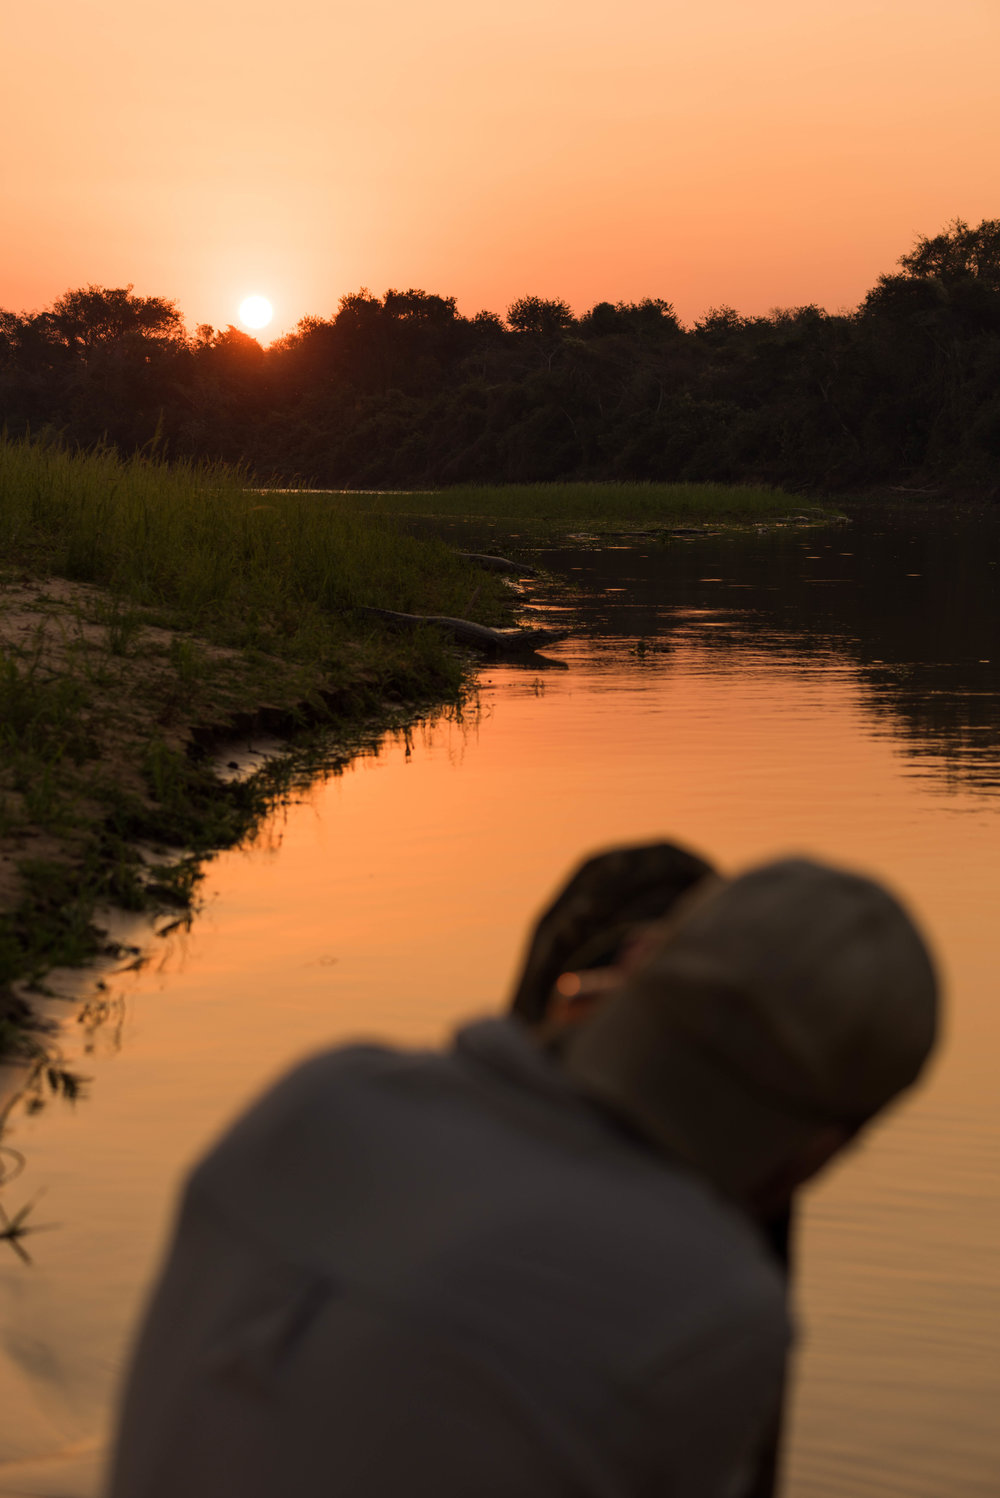 Photographer shooting yacare caiman along river bank